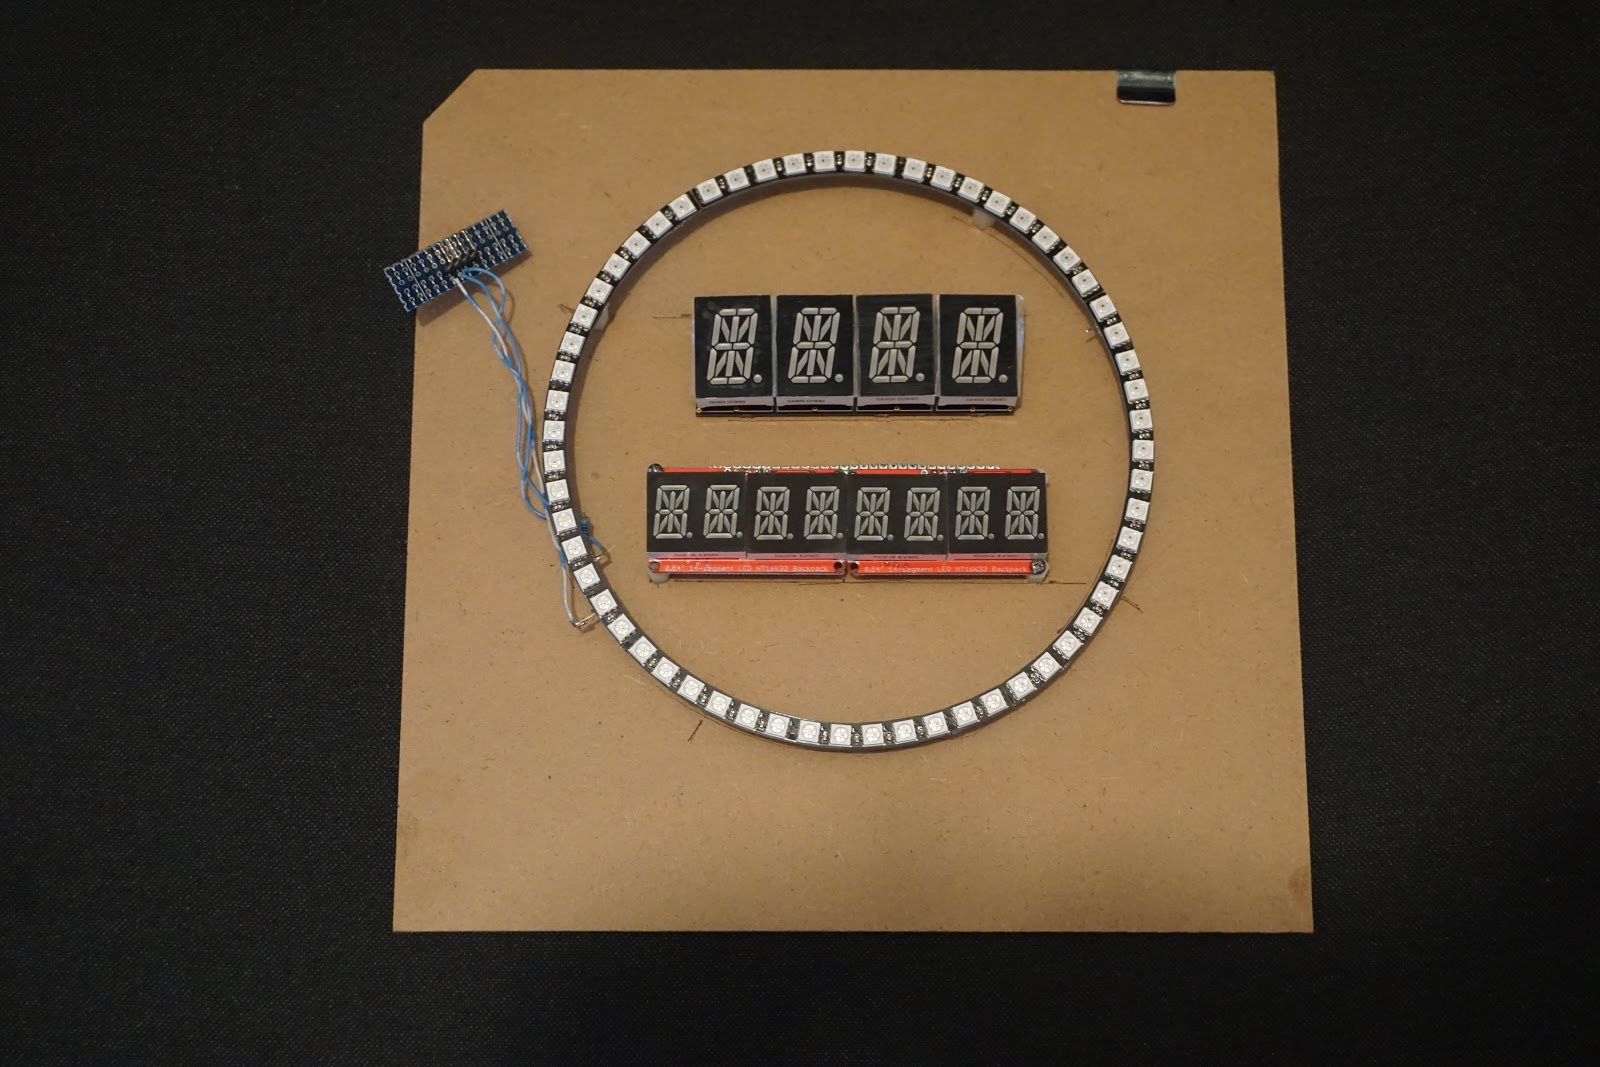 Electronics Circuit Clock Displays And Clock Timing For Single Board Computer